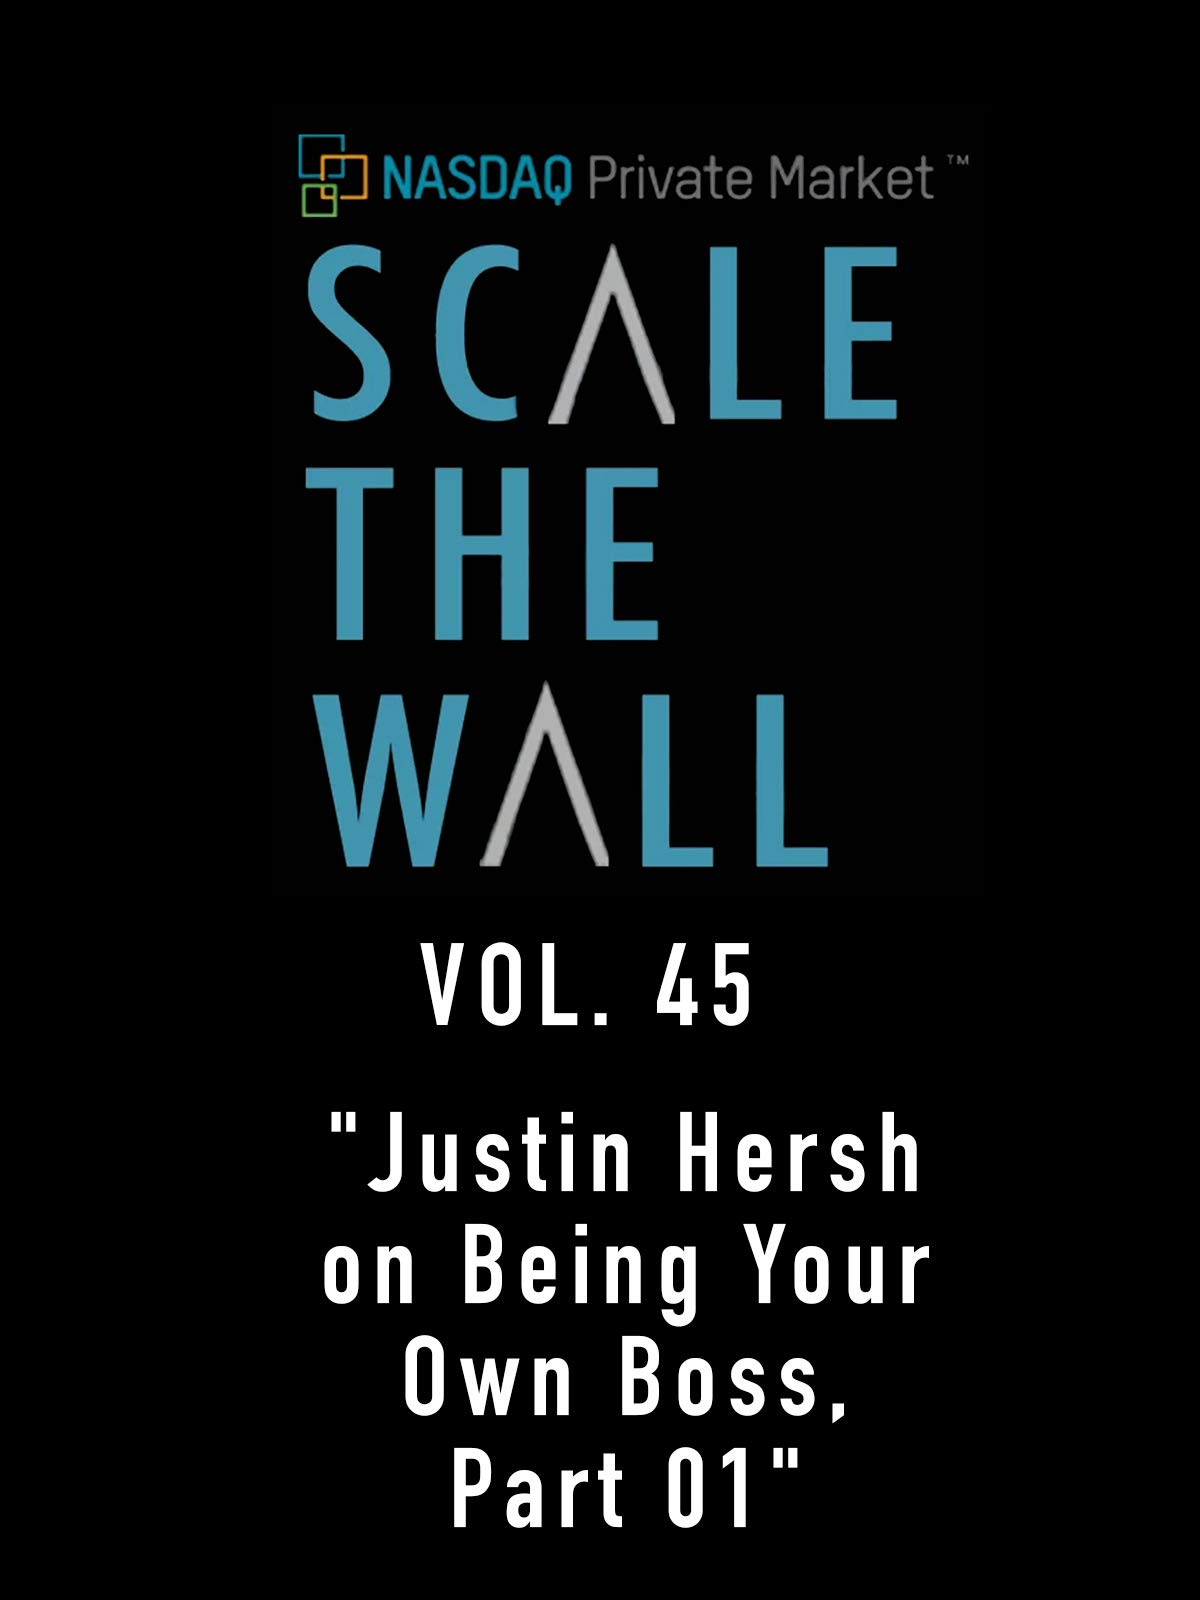 Scale the Wall Vol. 45